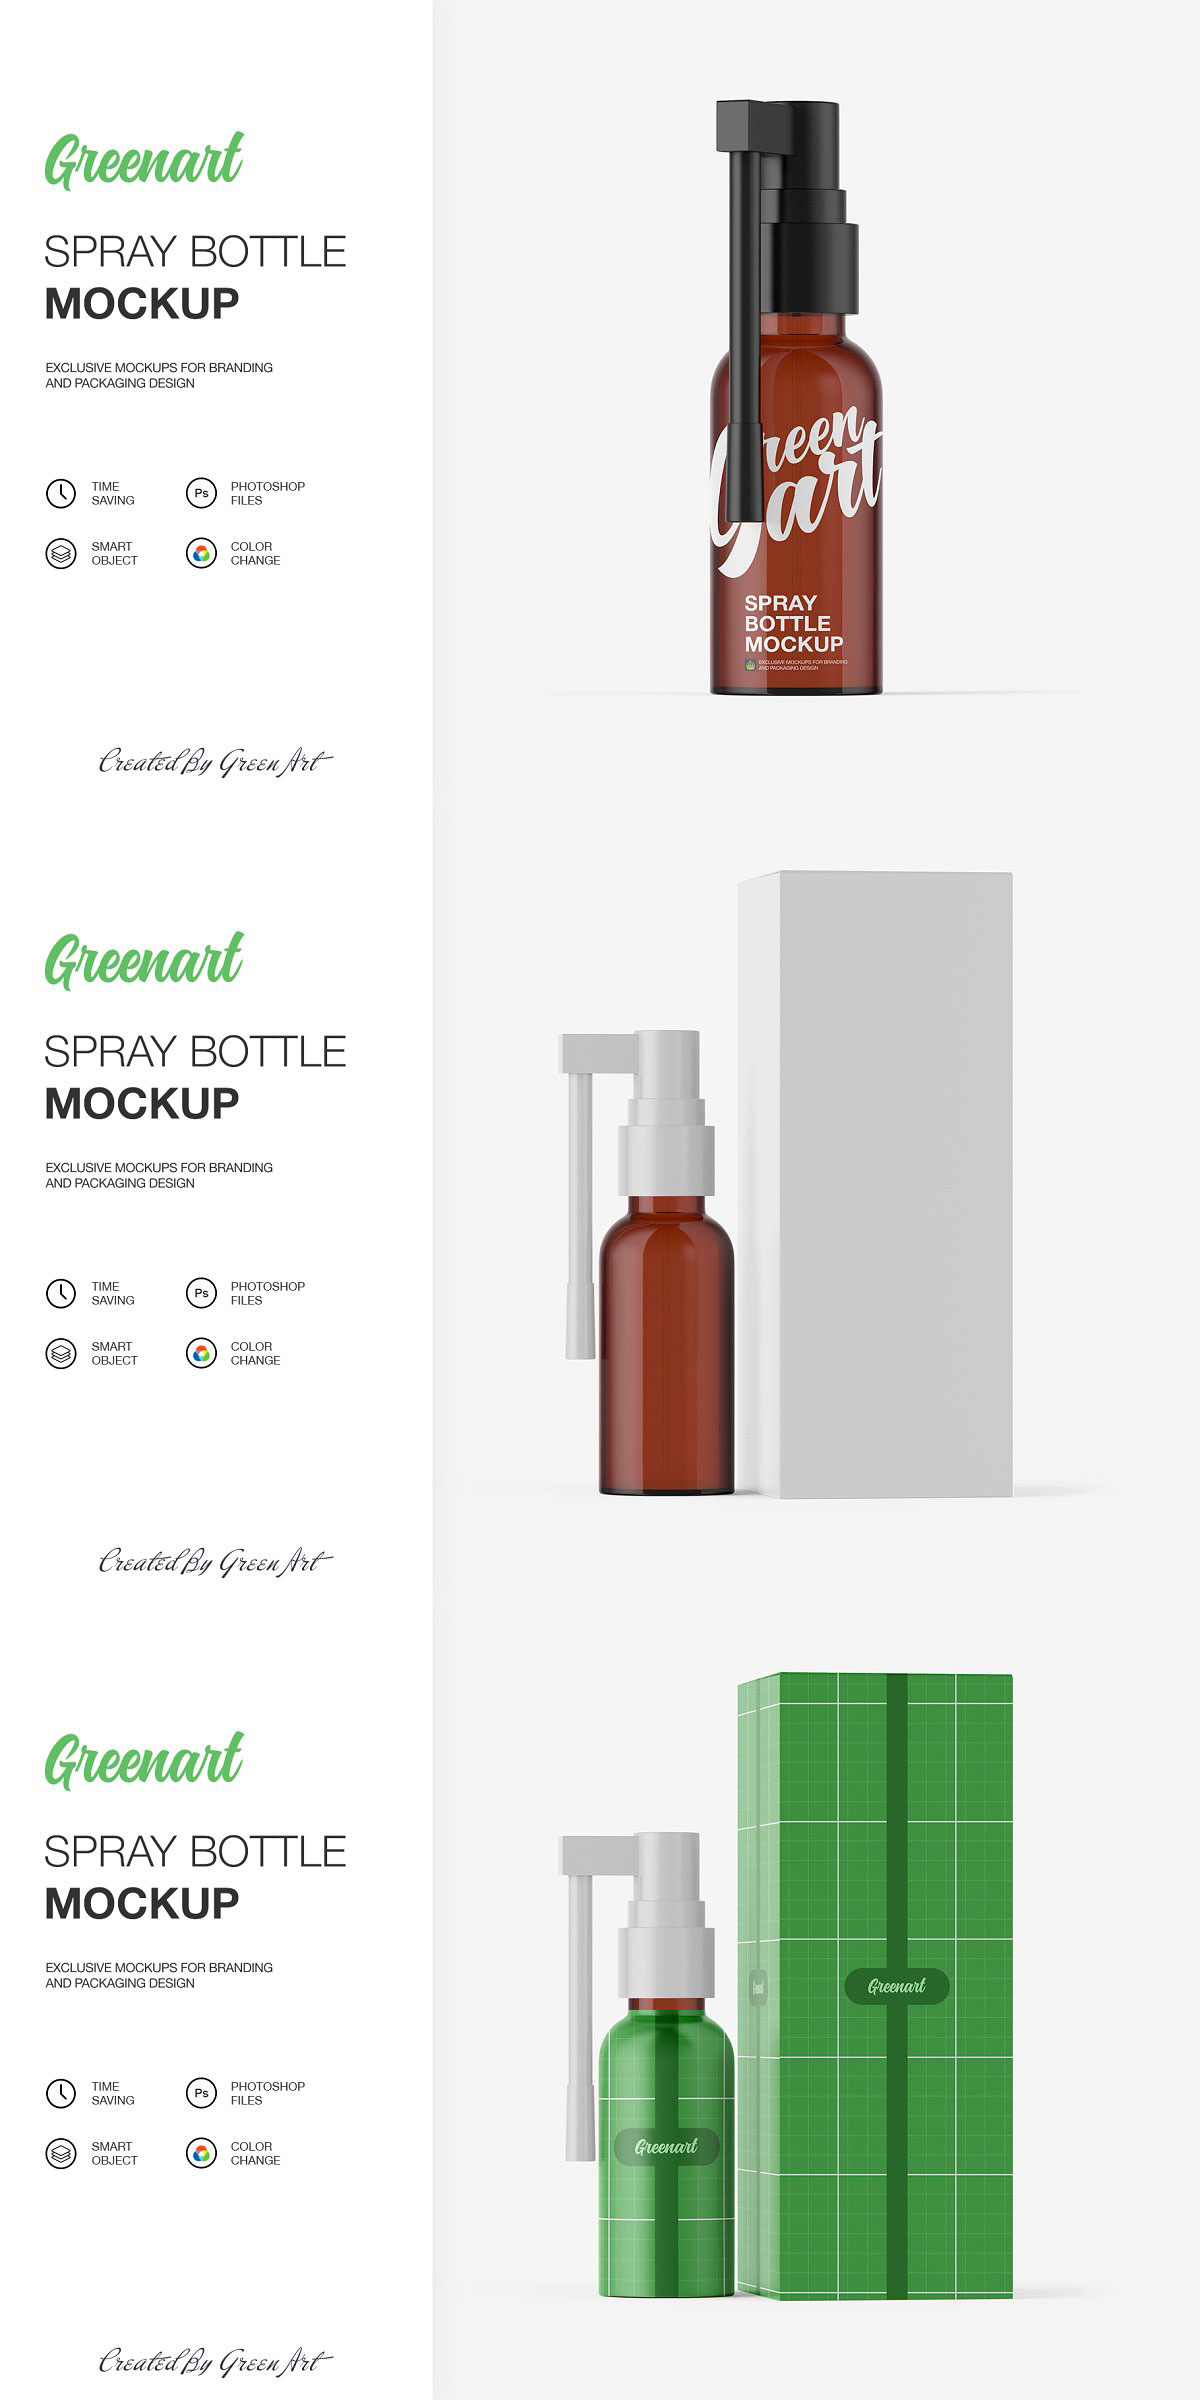 Spray Bottle W Kraft Box 2 Mockup 2381901 Free Download